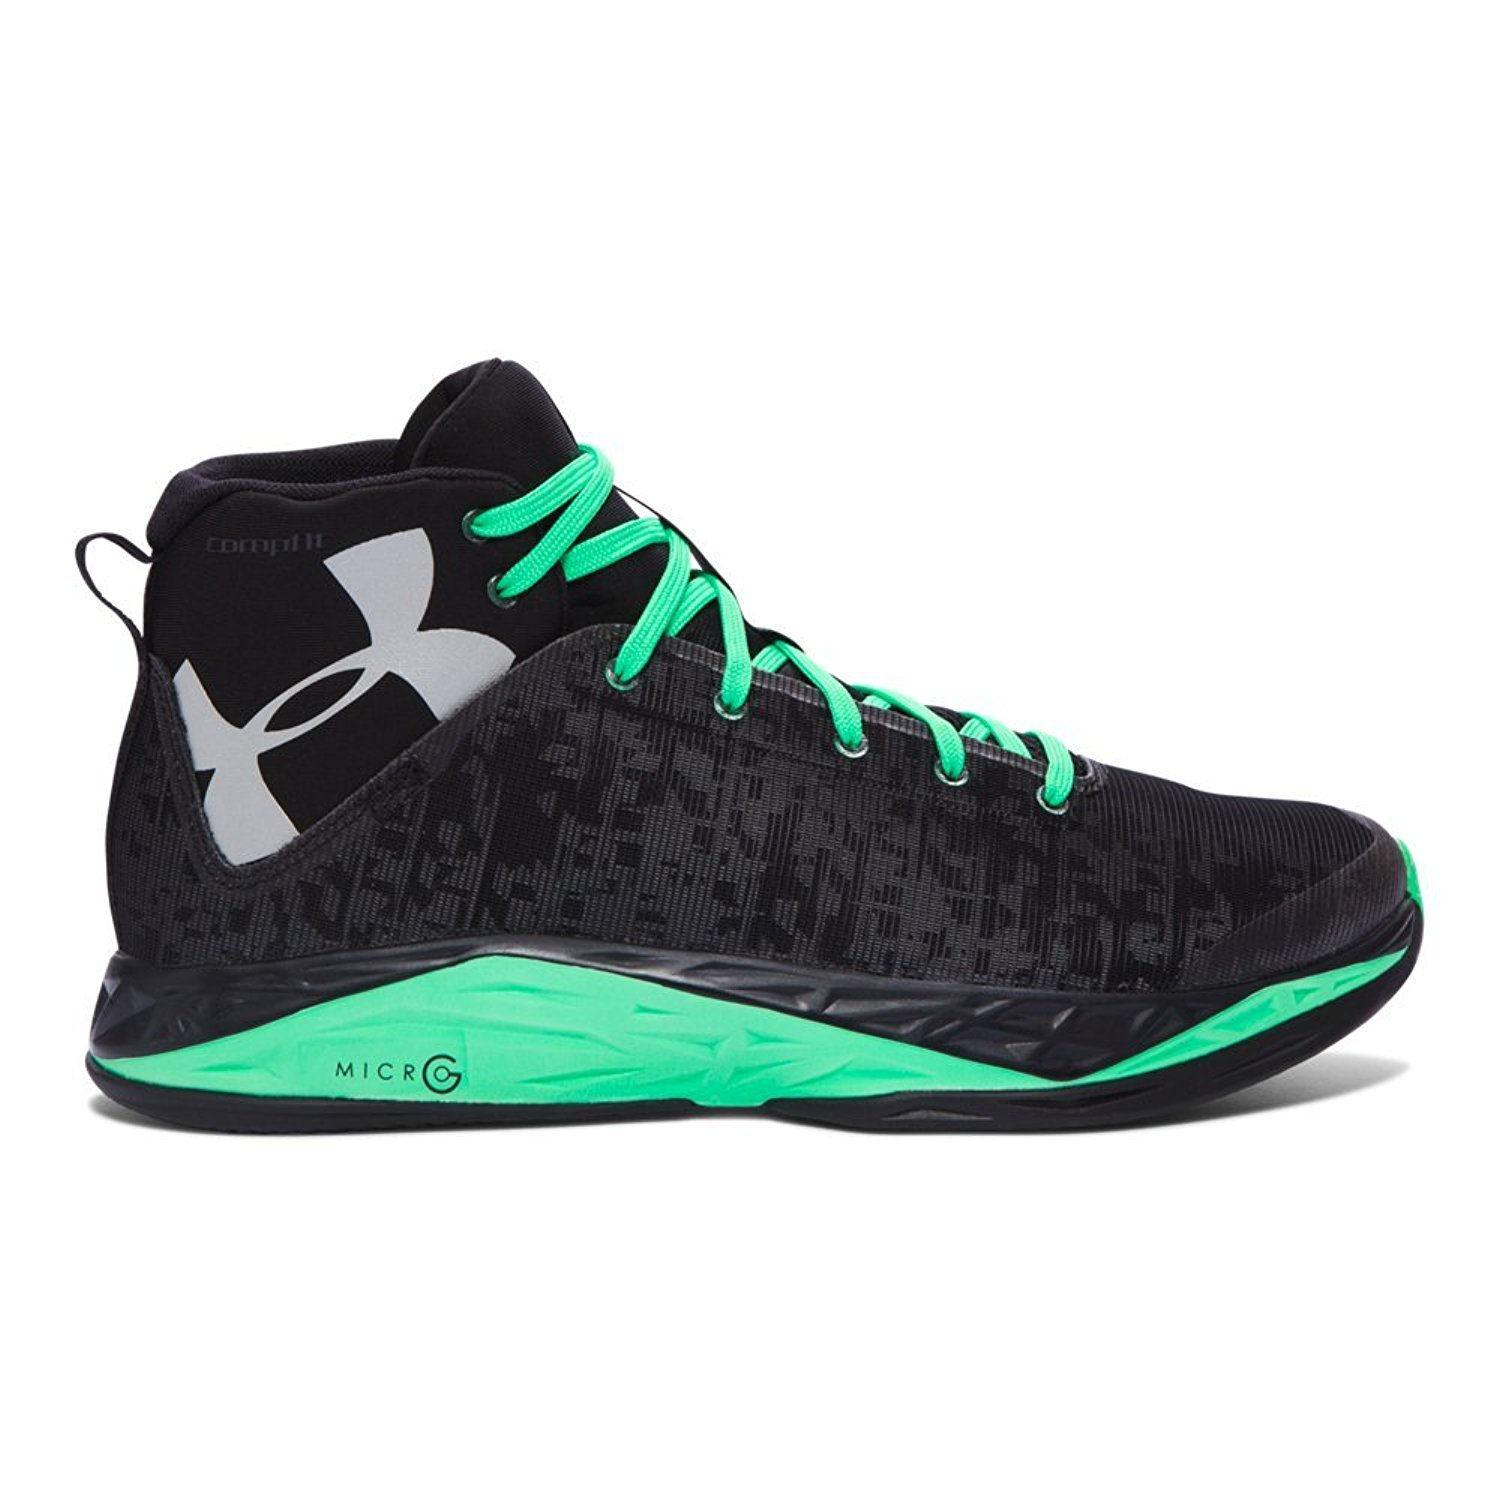 0233d2c0 Cheap Under Armour Shoes On Sale, find Under Armour Shoes On Sale ...